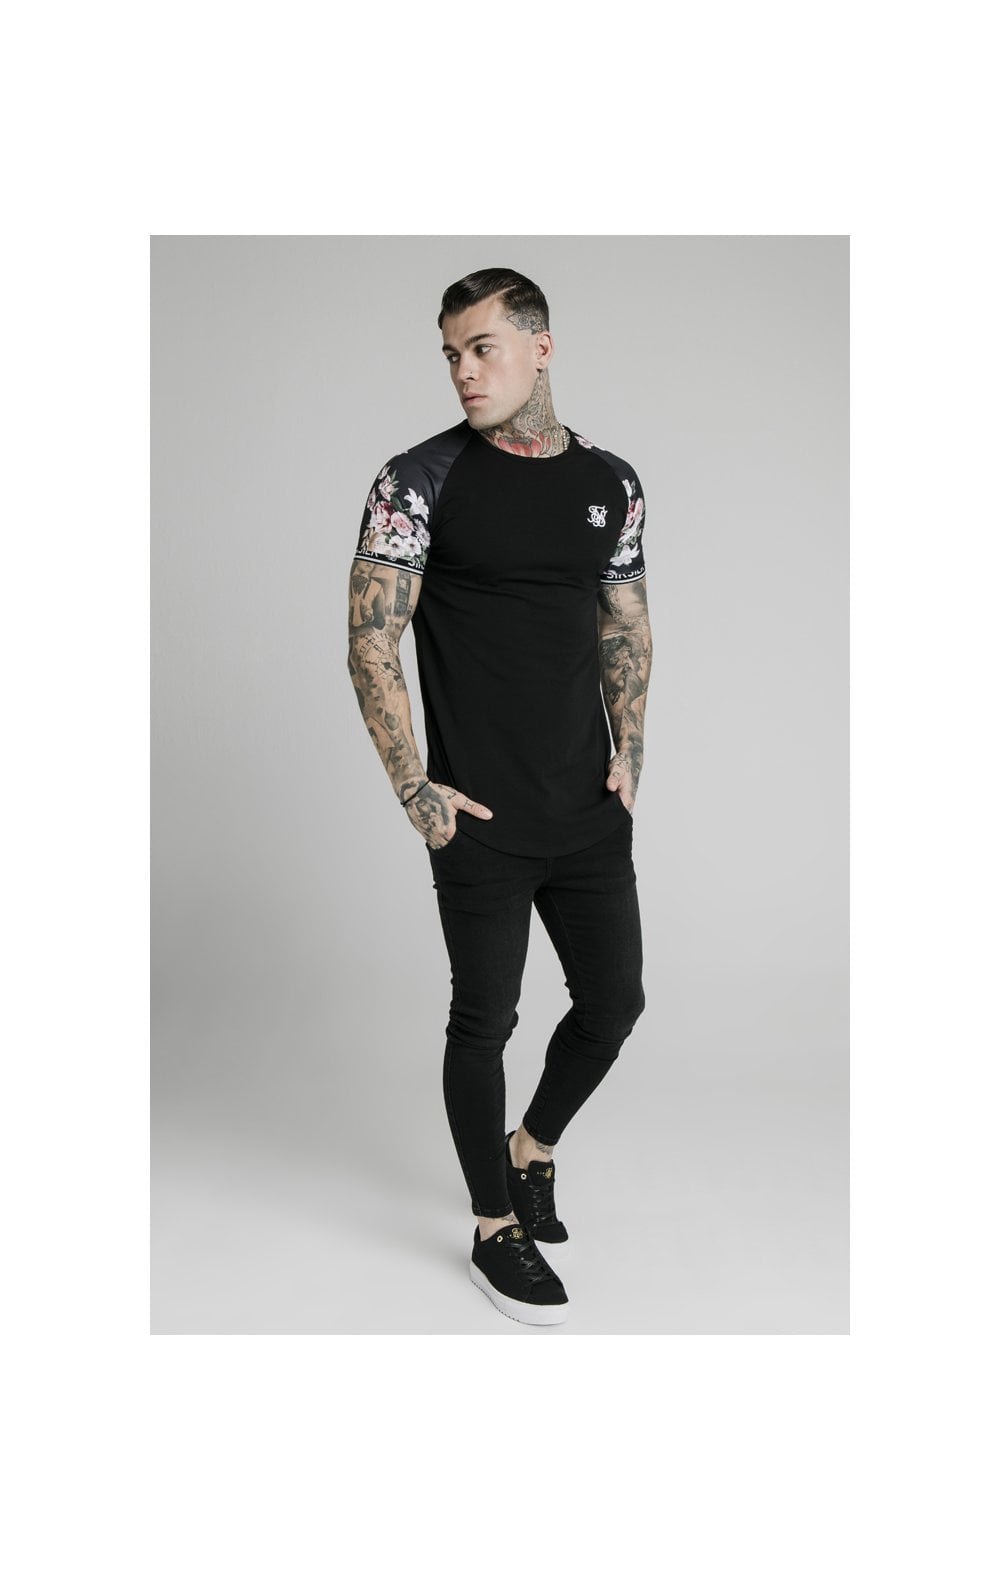 Load image into Gallery viewer, SikSilk S/S Prestige Floral Inset Tech Tee - Black (2)